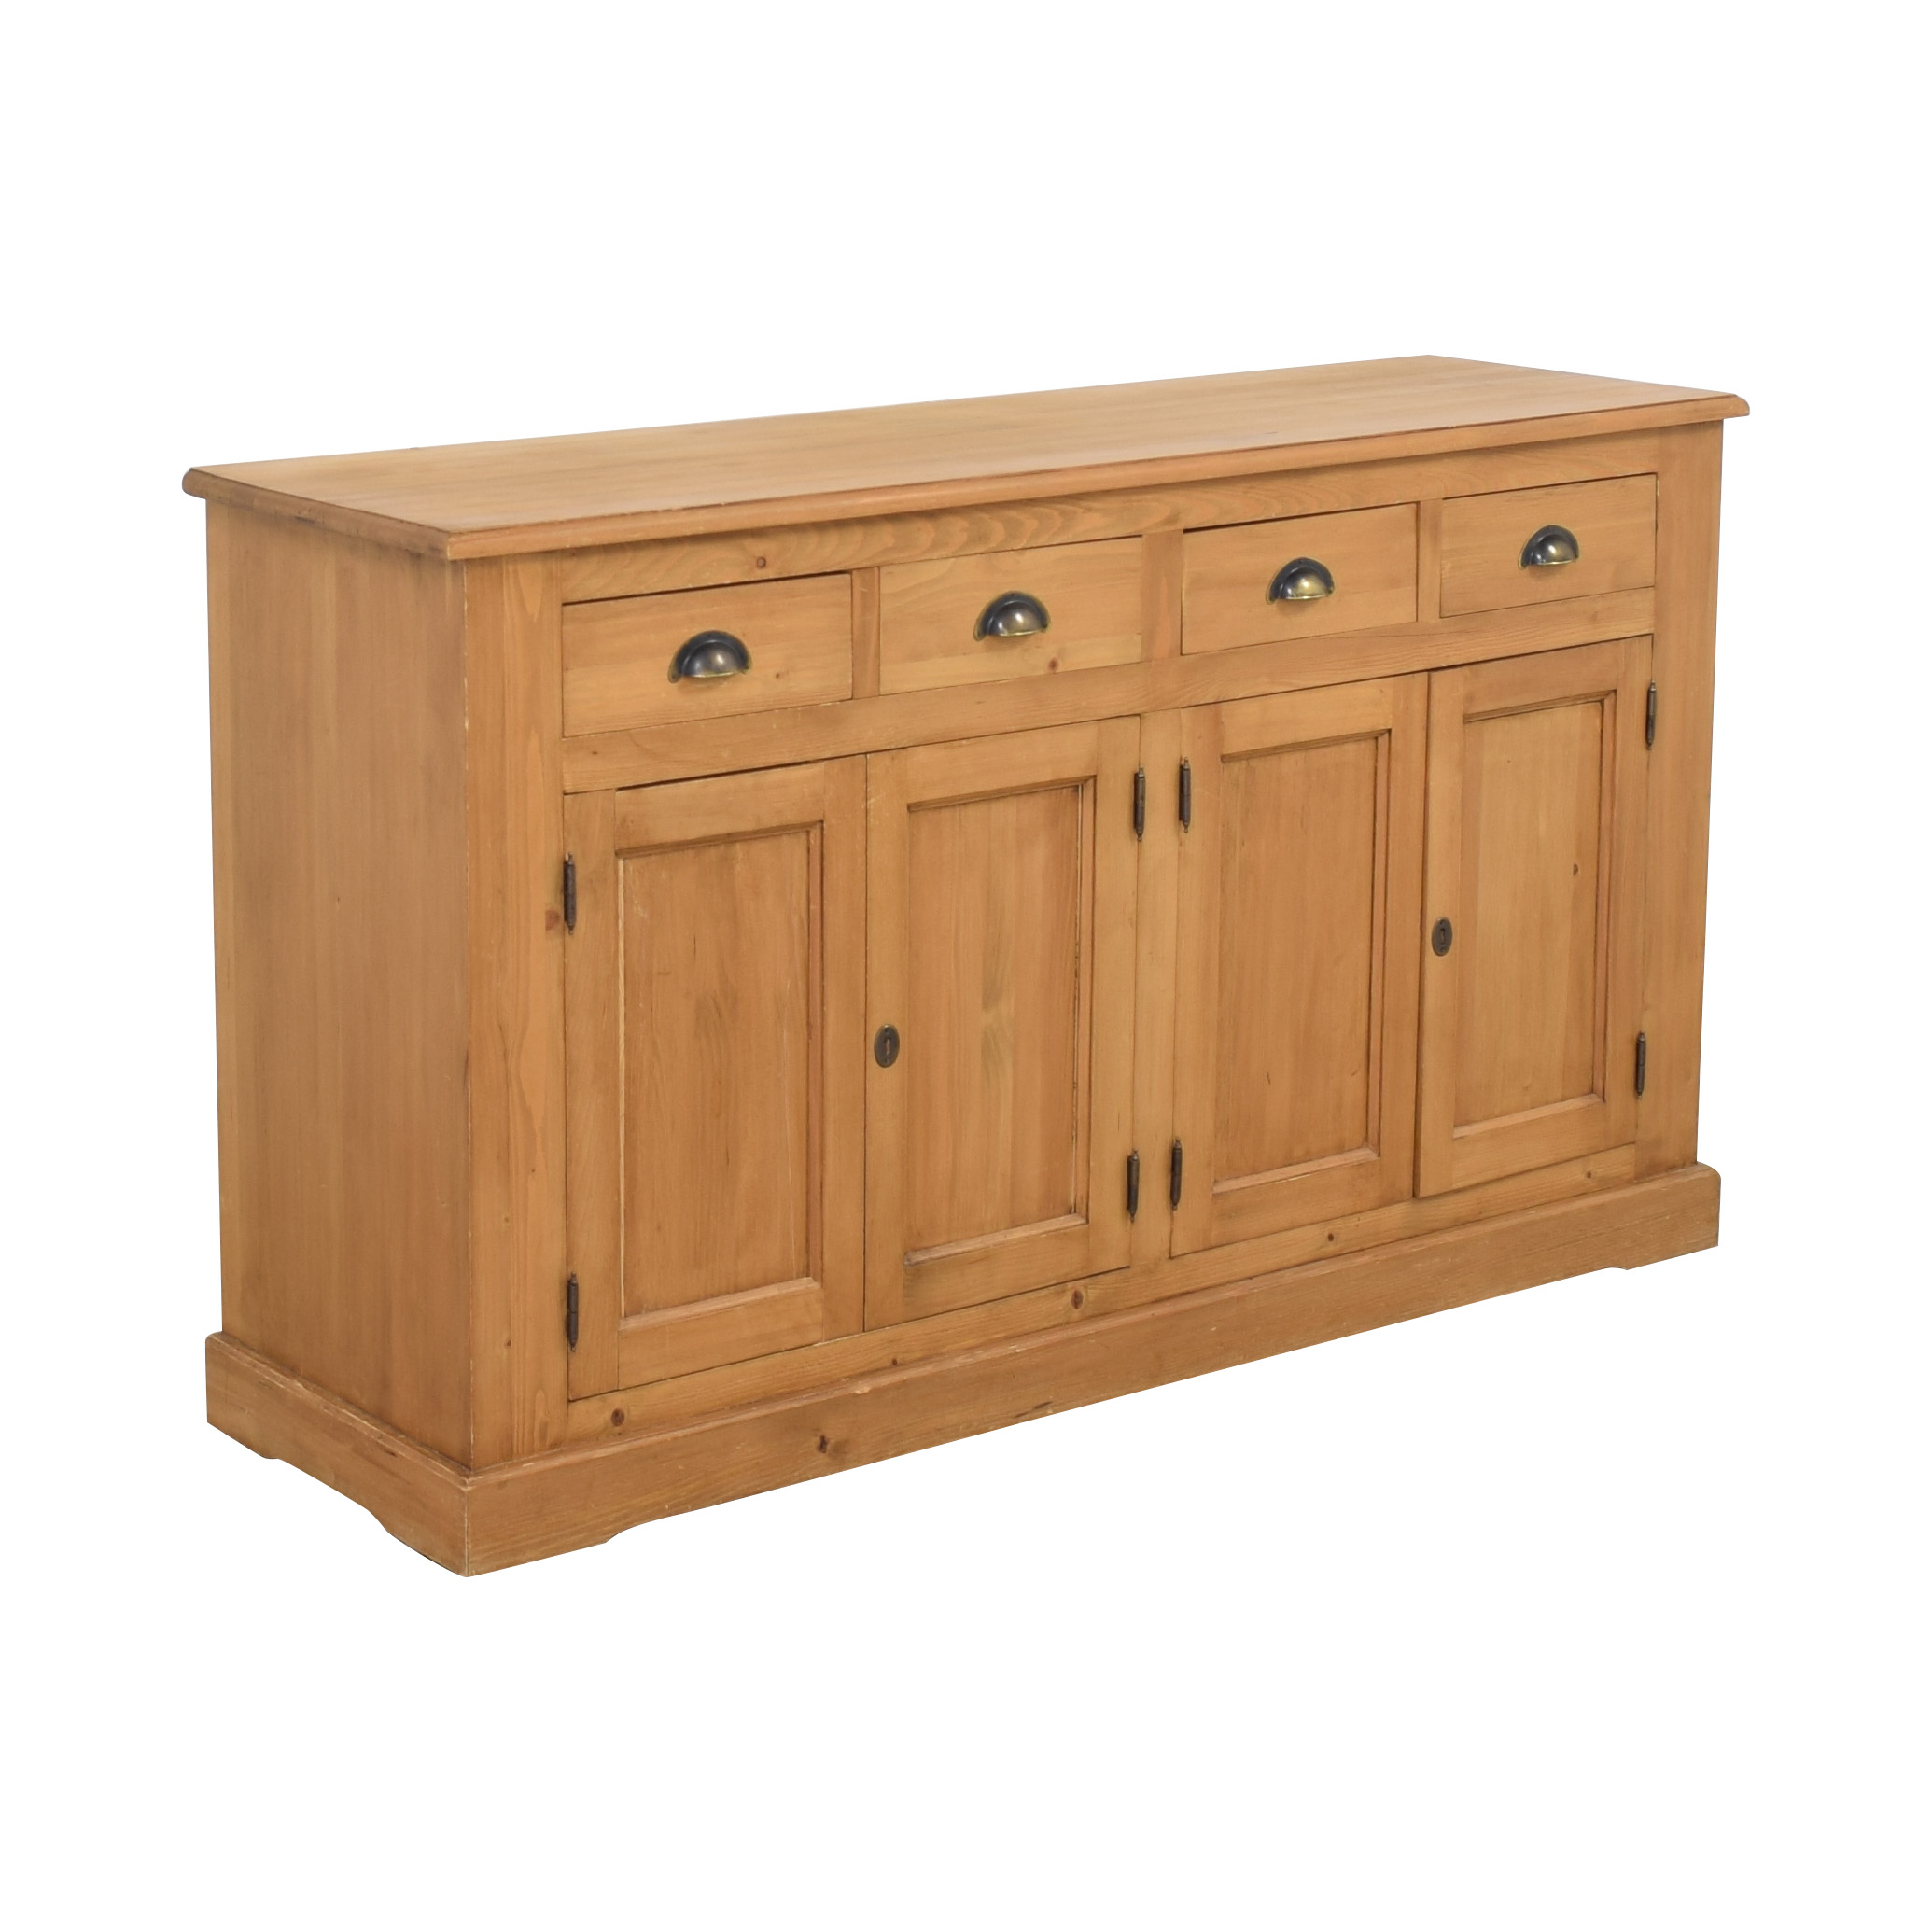 Wooden Cabinet with Four Drawers coupon